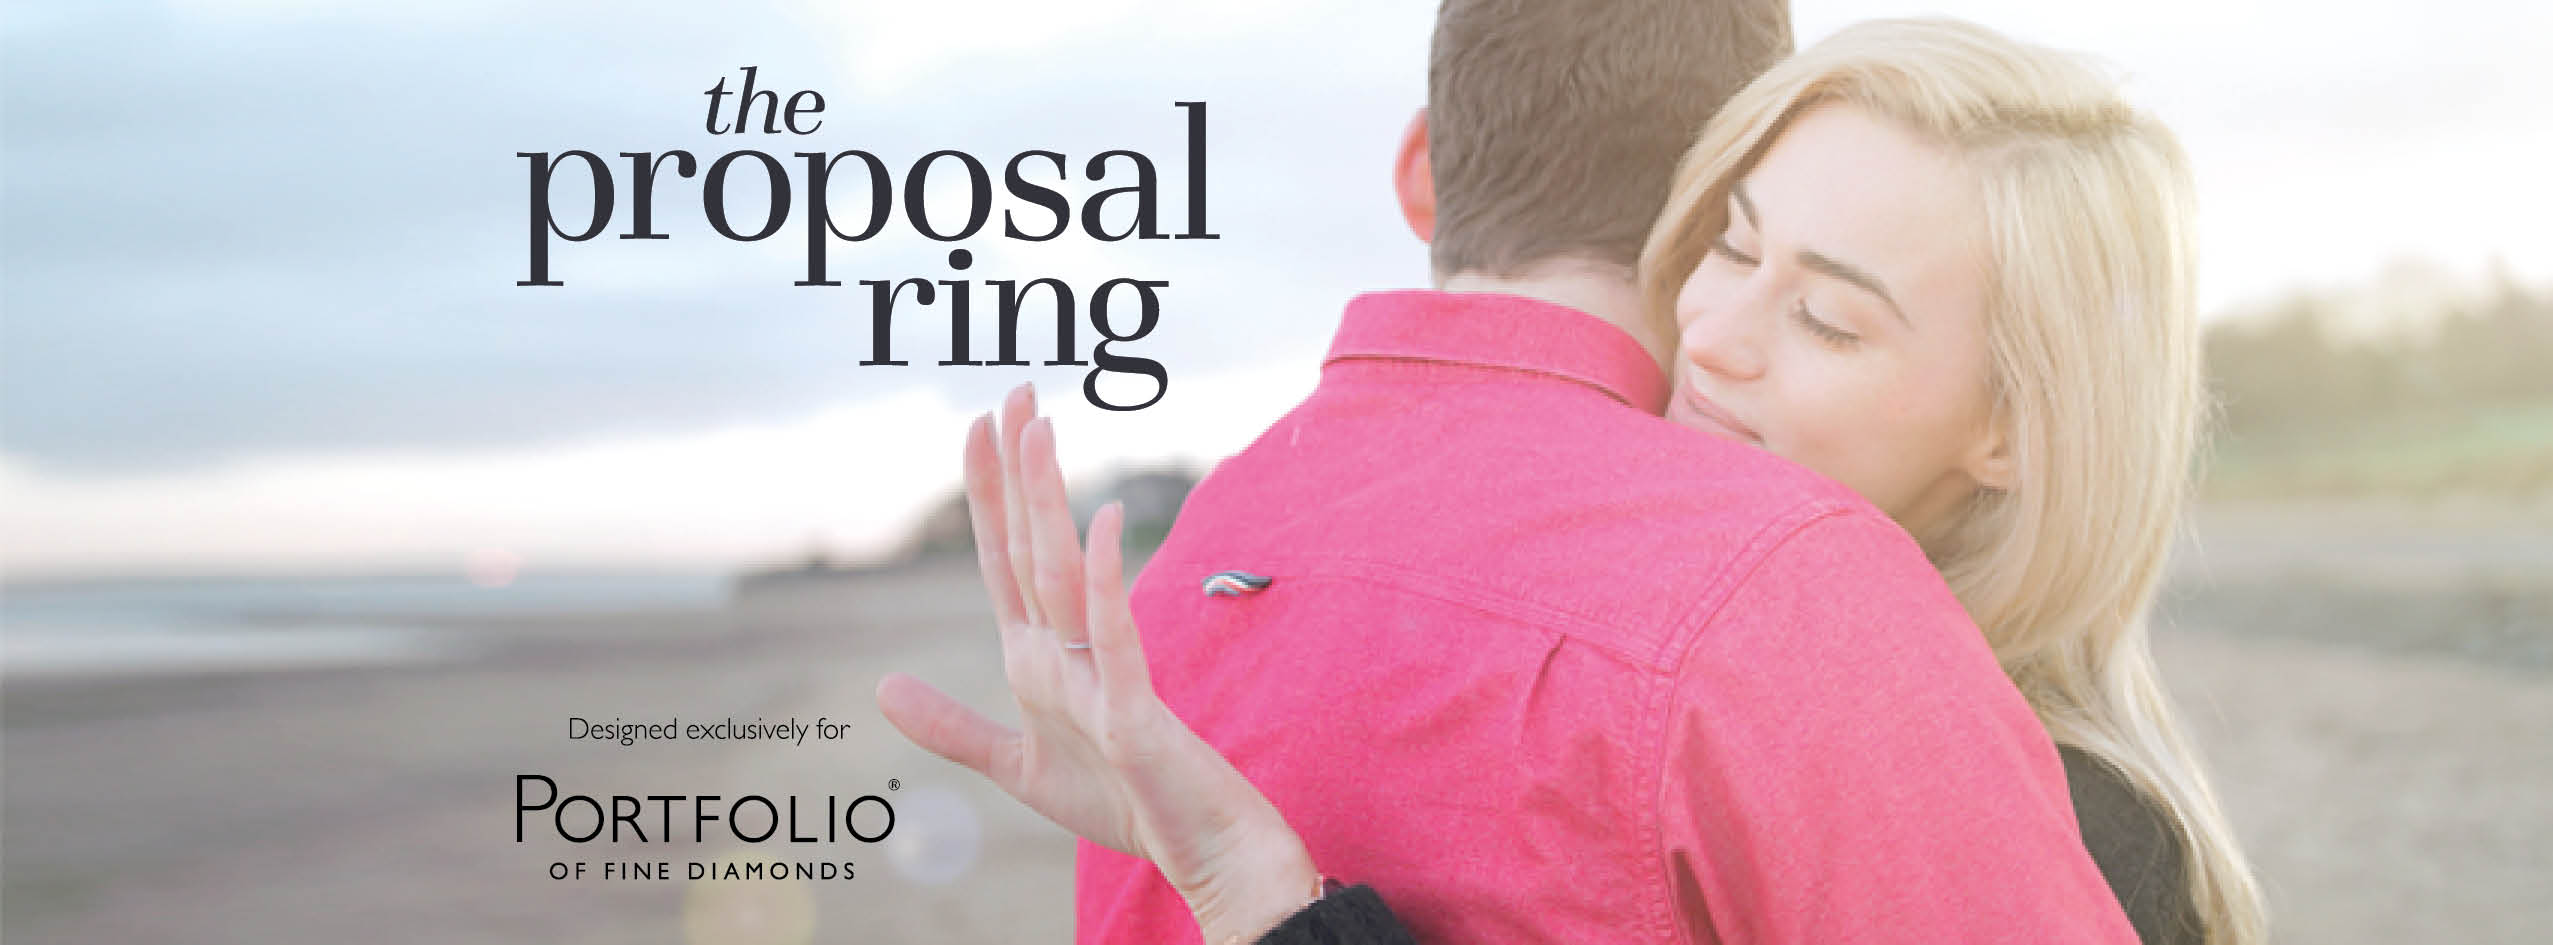 Proposal Ring | Portfolio of Fine Diamonds